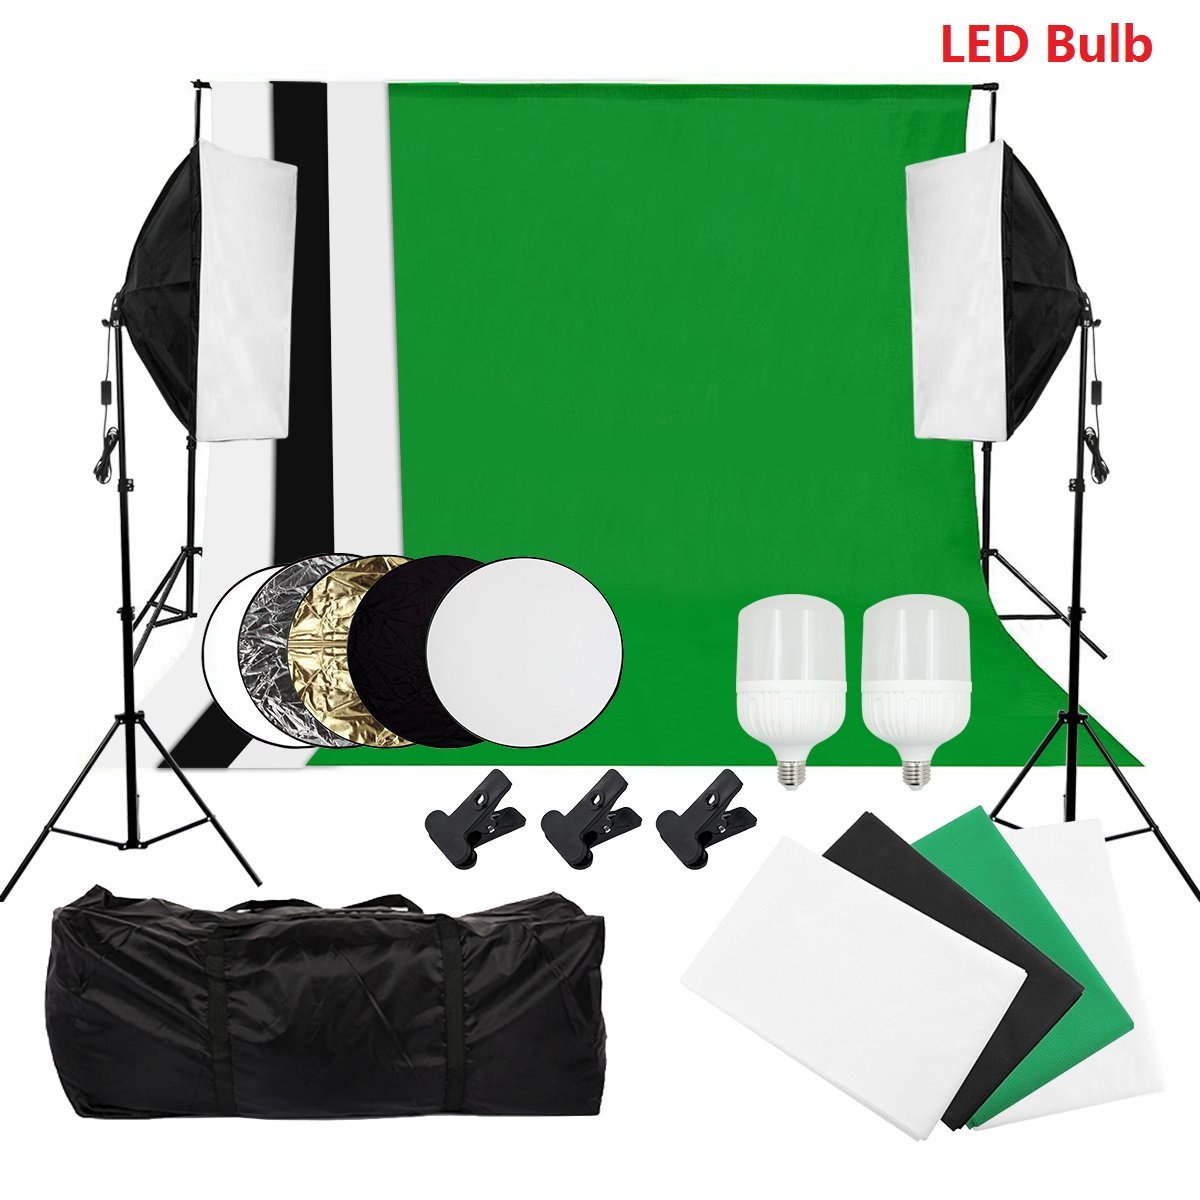 Photography Continuous Lighting Kit Photo Studio Set Background Support System, 2 x LED Bulb Softbox Light Kit for Video, Portrait and Photography Lighting by Grandekor